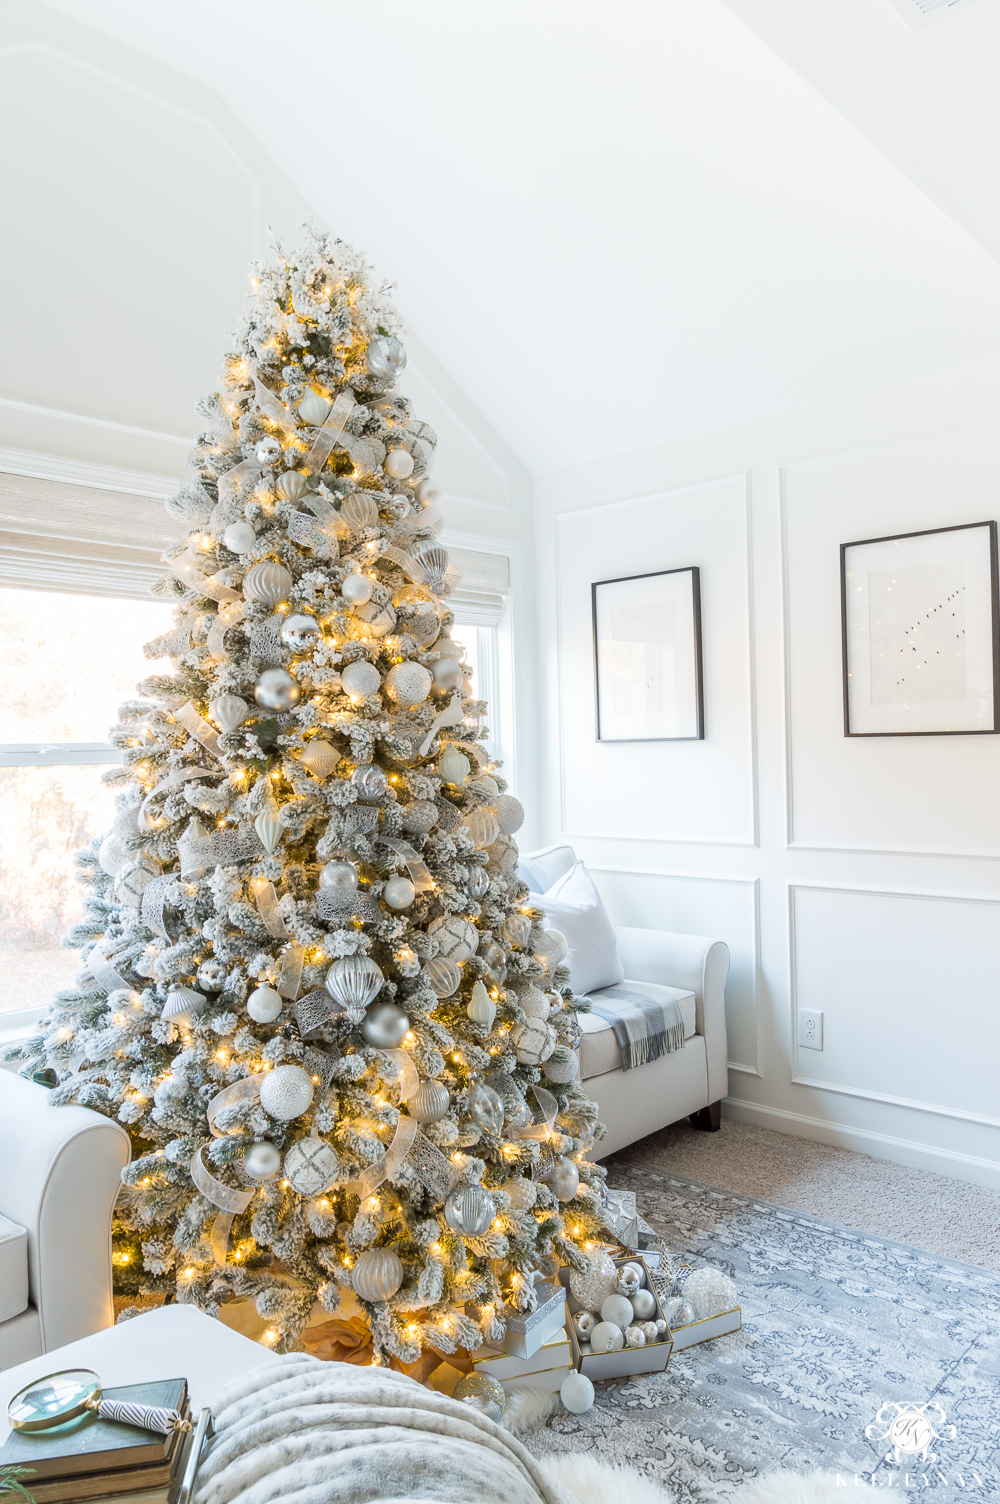 Silver and white flocked Christmas tree in the bedroom